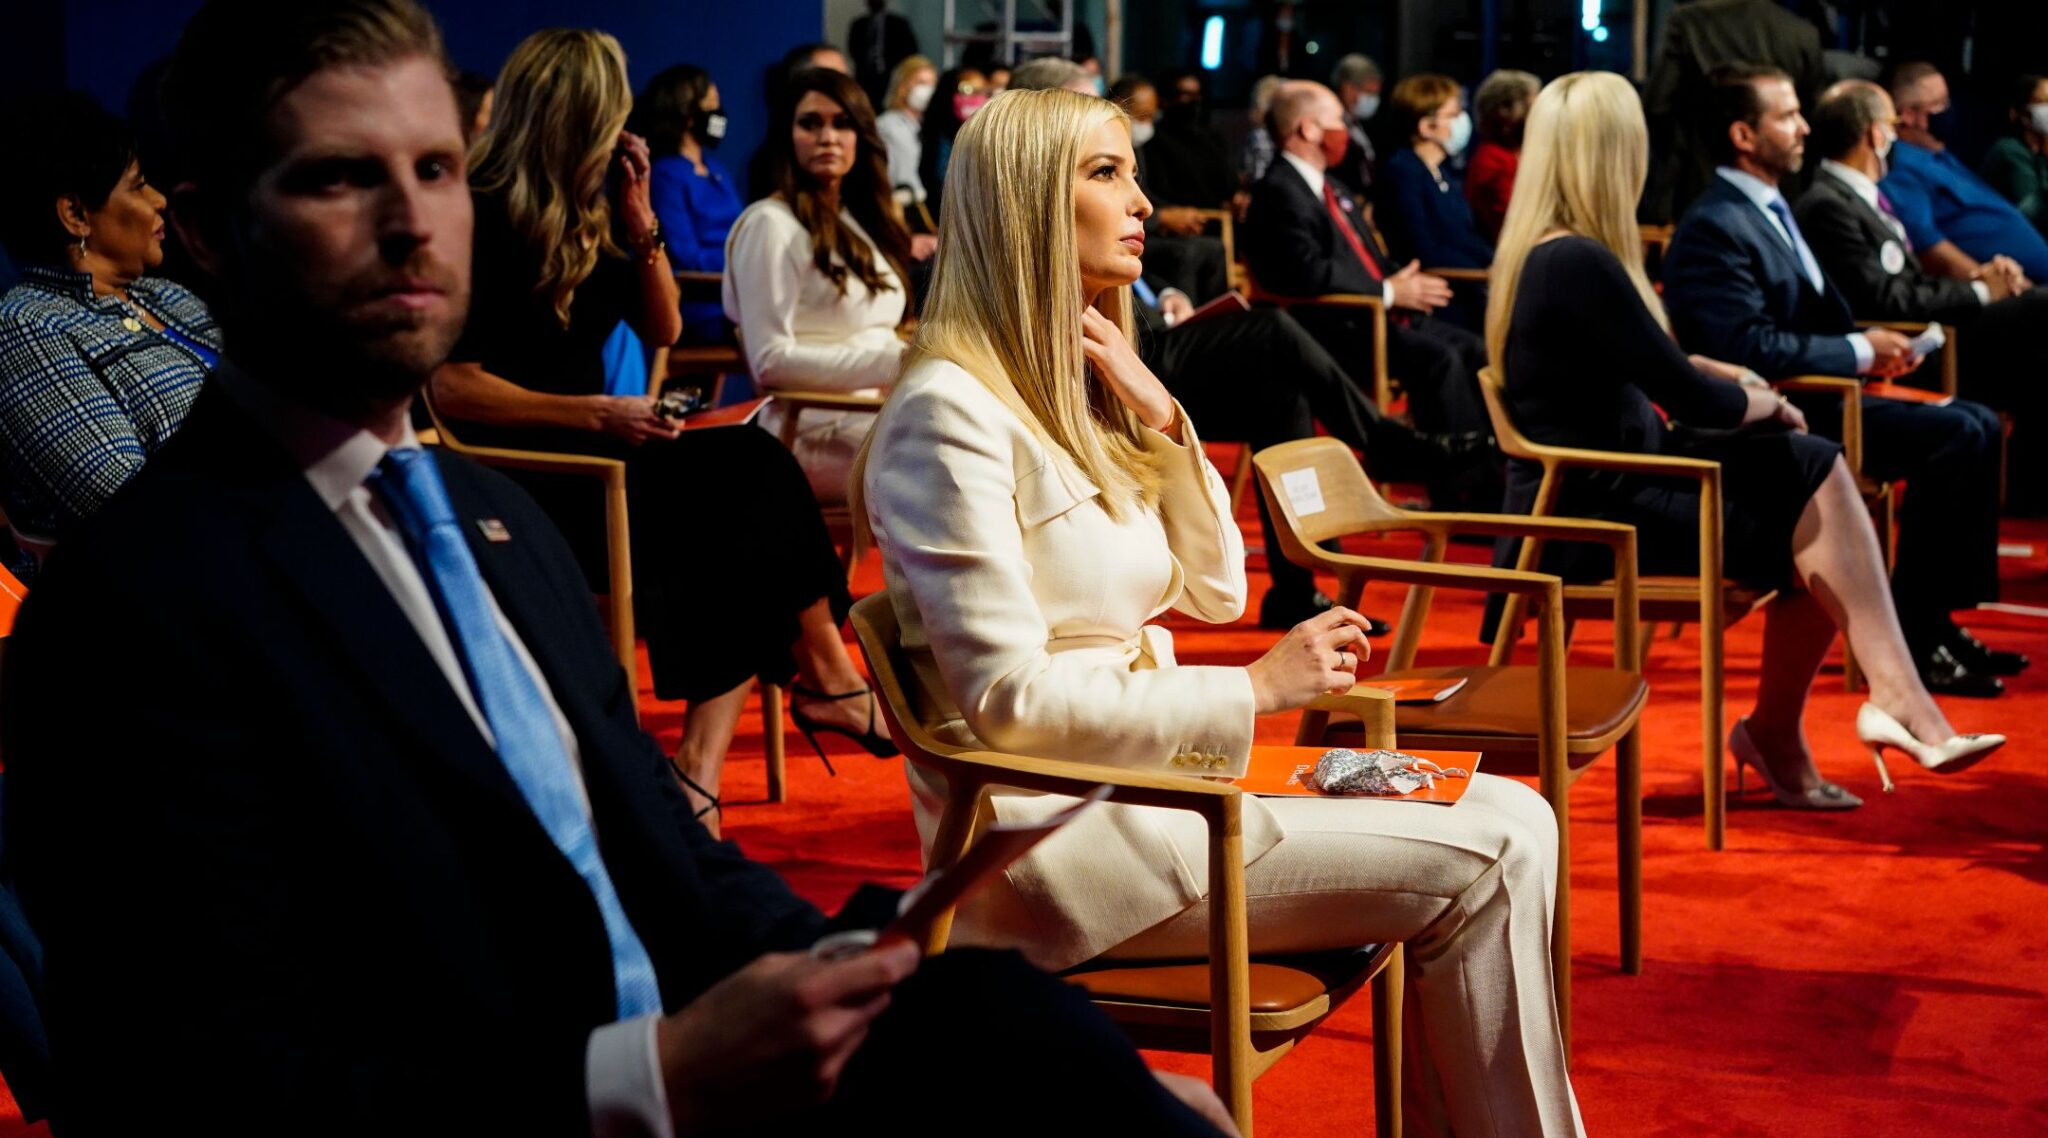 Four children of President Donald Trump — from left, Eric, Ivanka, Tiffany and Donald Jr. — sit in the audience at the first debate between the incumbent and former Vice President Joe Biden in Cleveland, Sept. 29, 2020. (Photo/JTA-Melina Mara-The Washington Post via Getty Images)